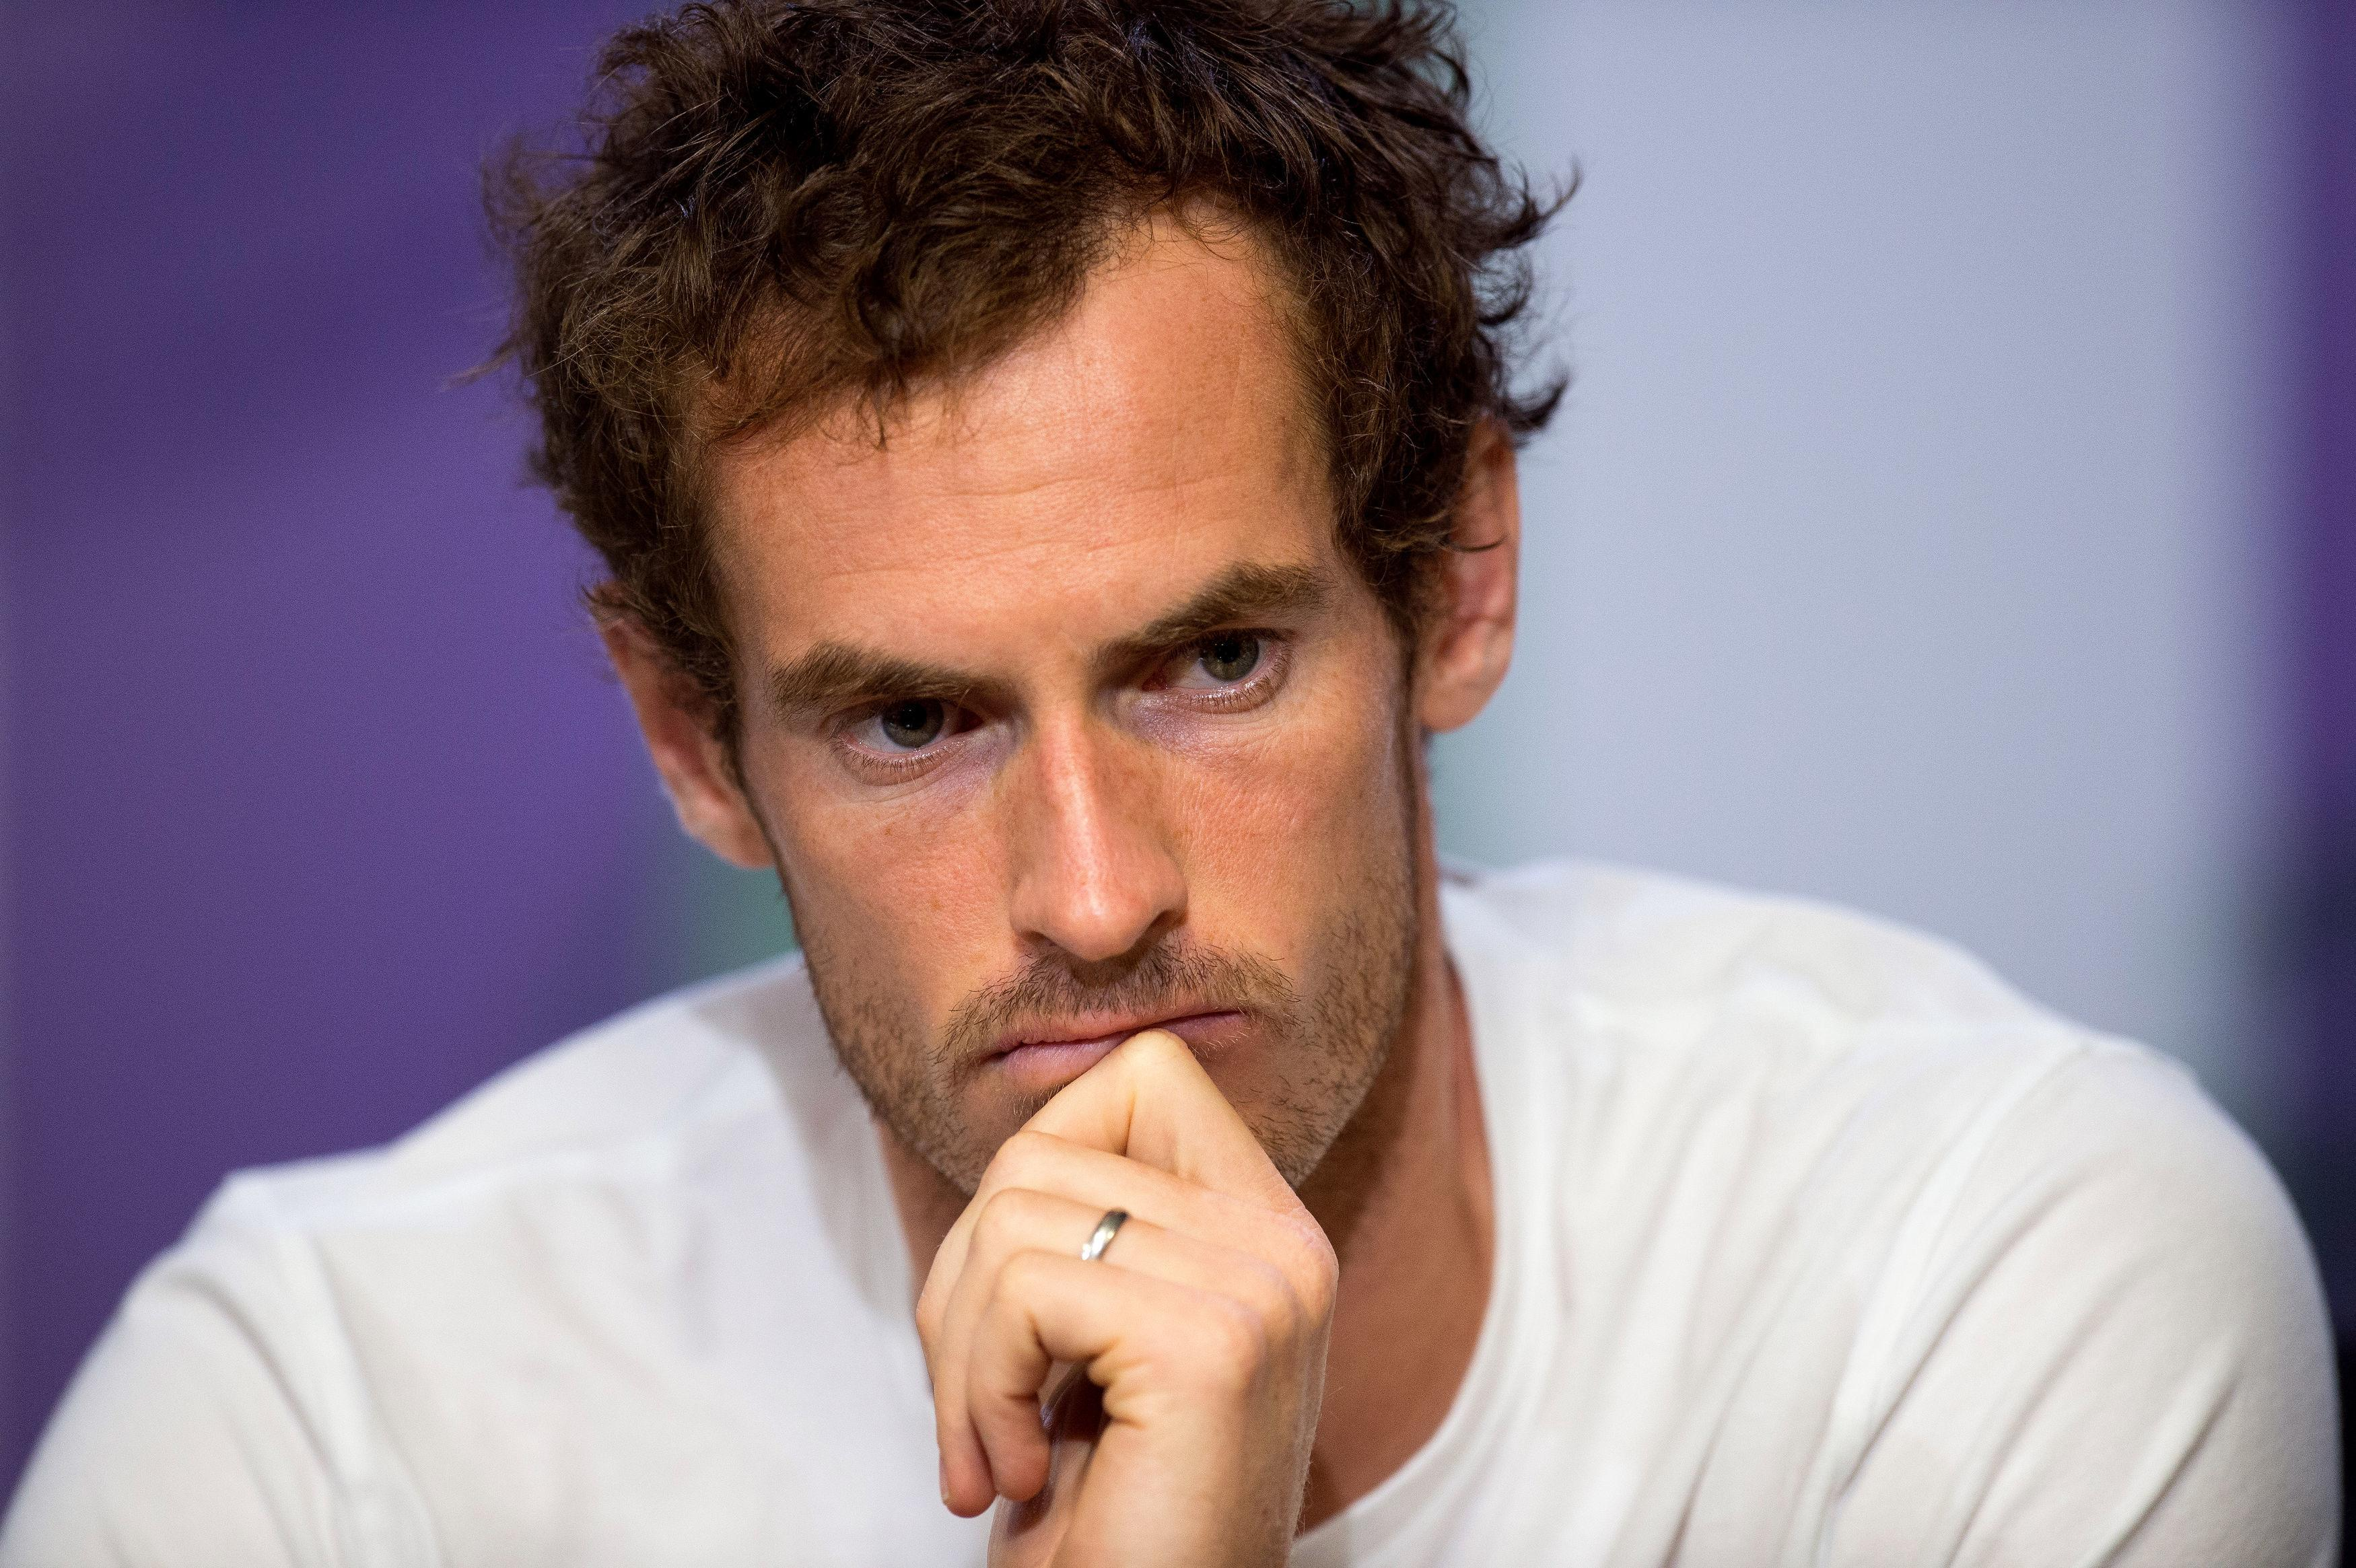 Andy Murray has dropped to world No839 and British No23 in the latest rankings